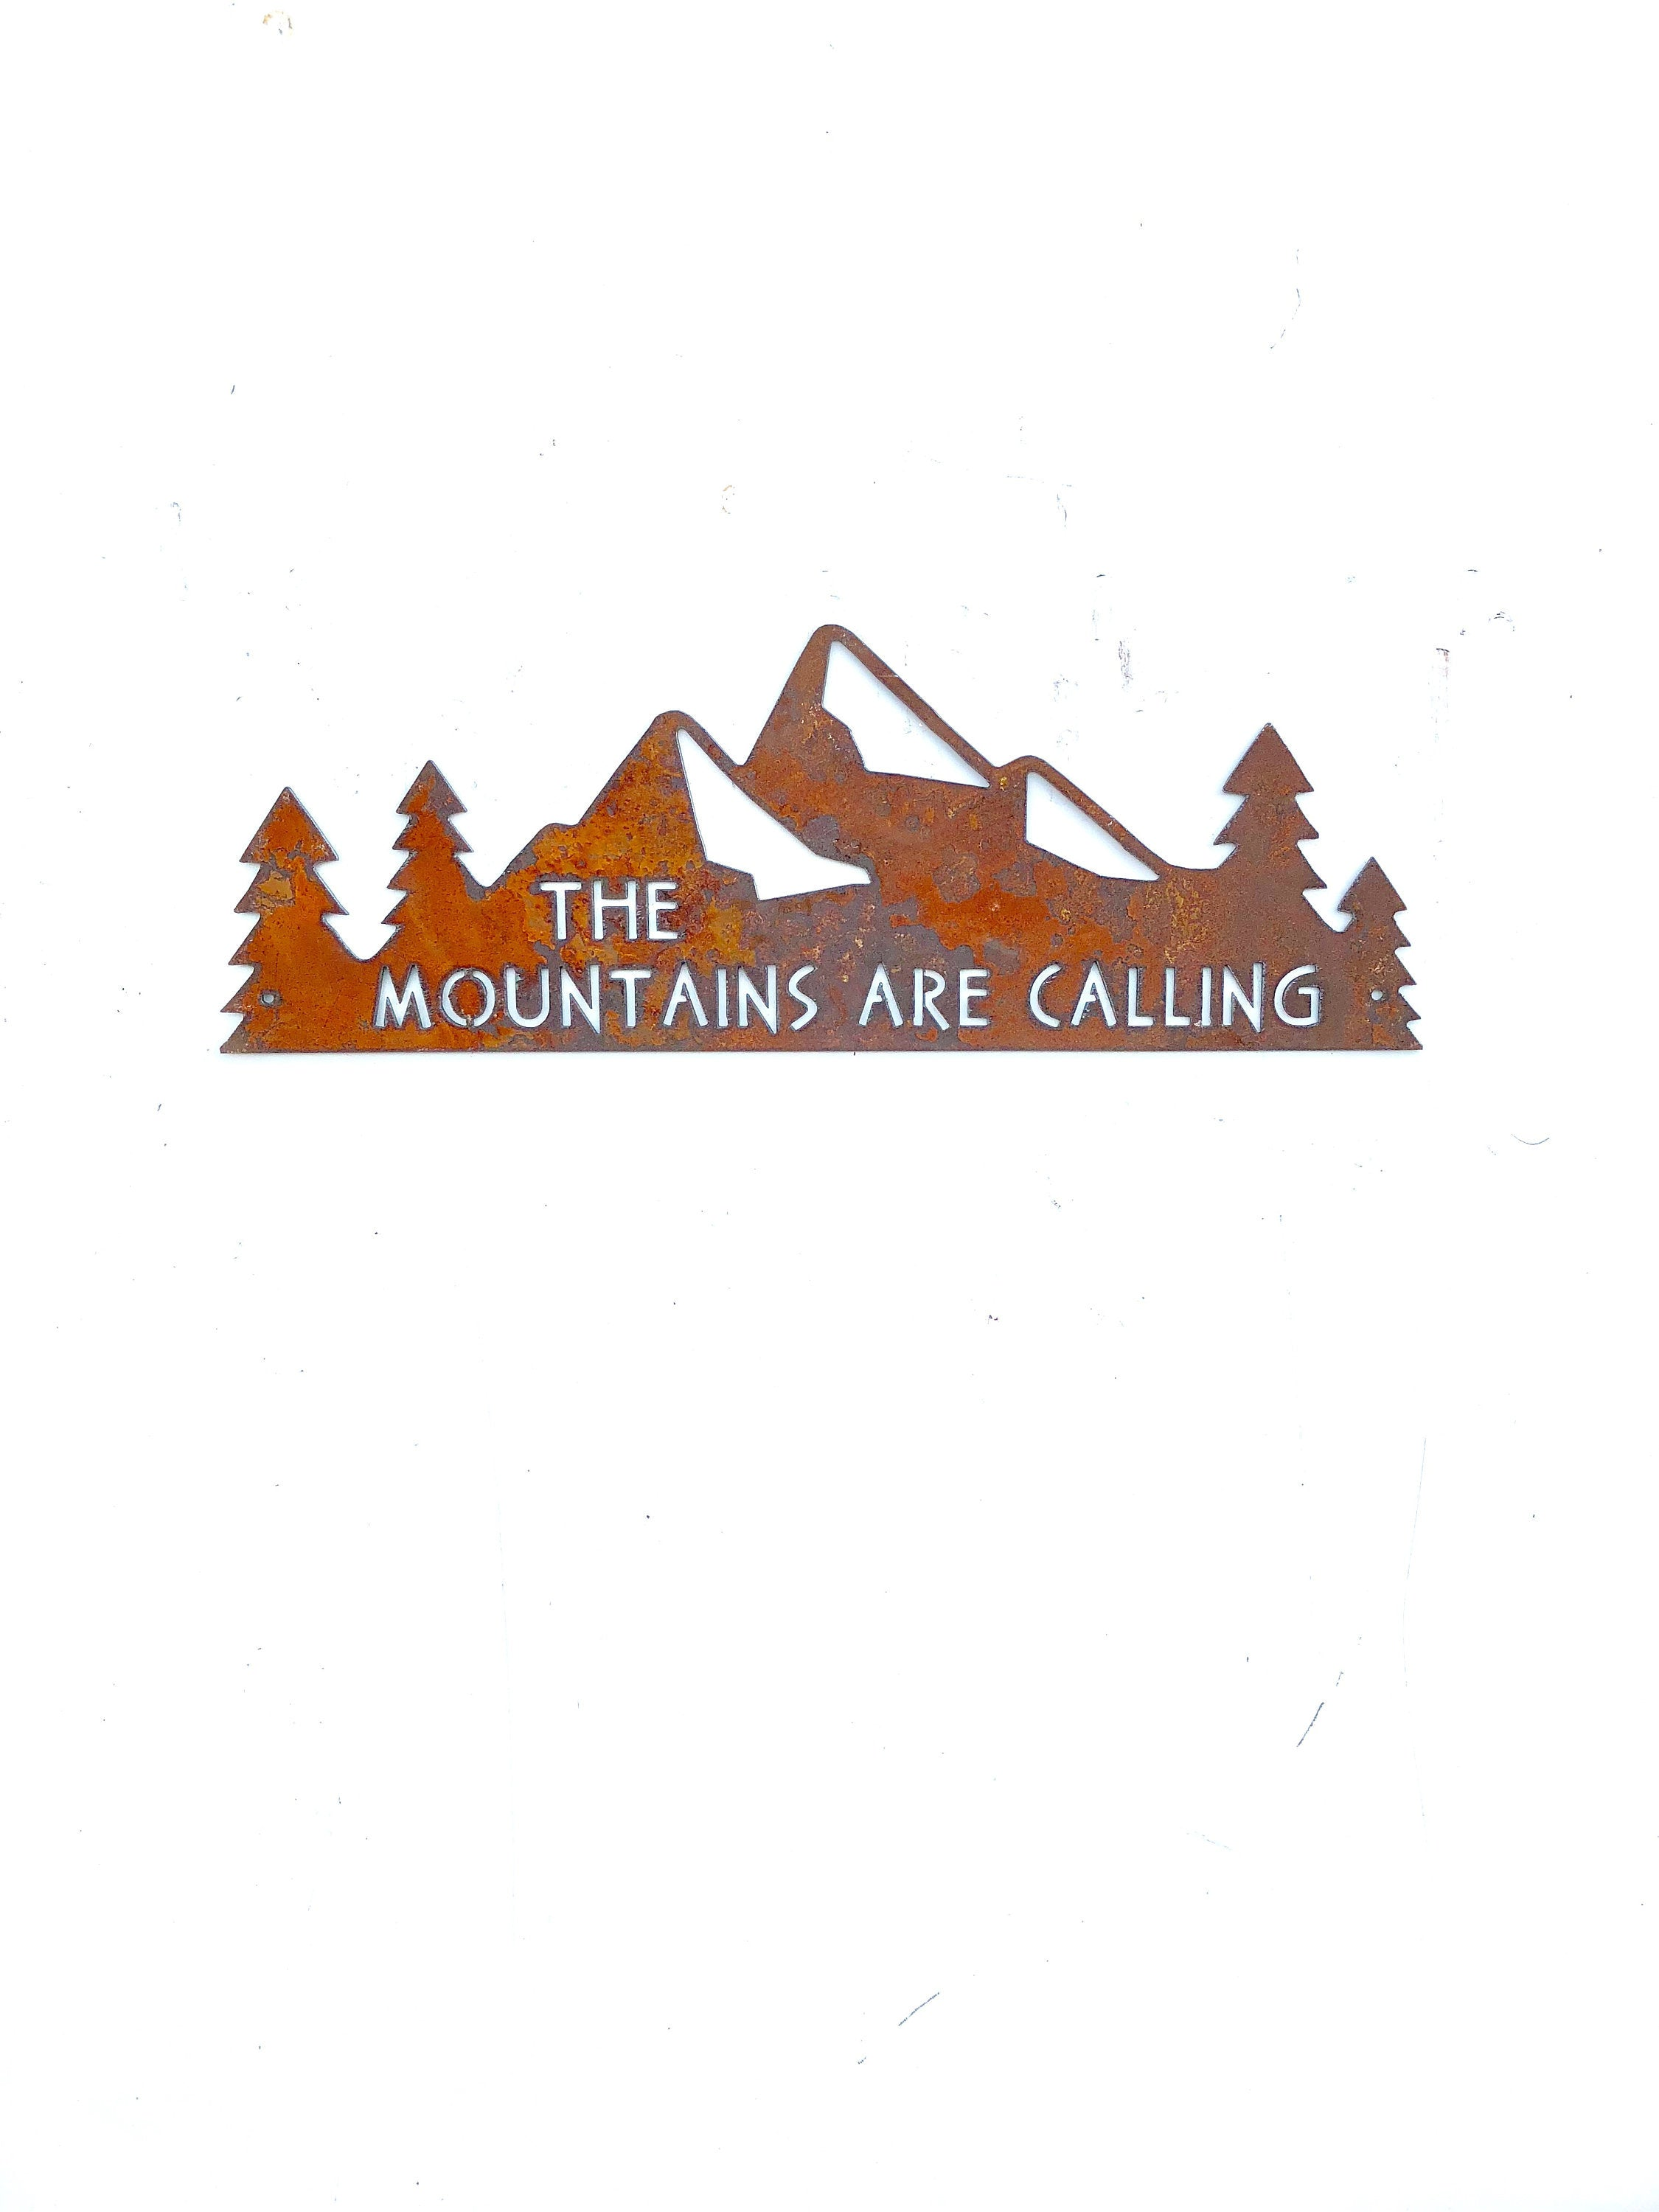 The Mountains Are Calling metal sign